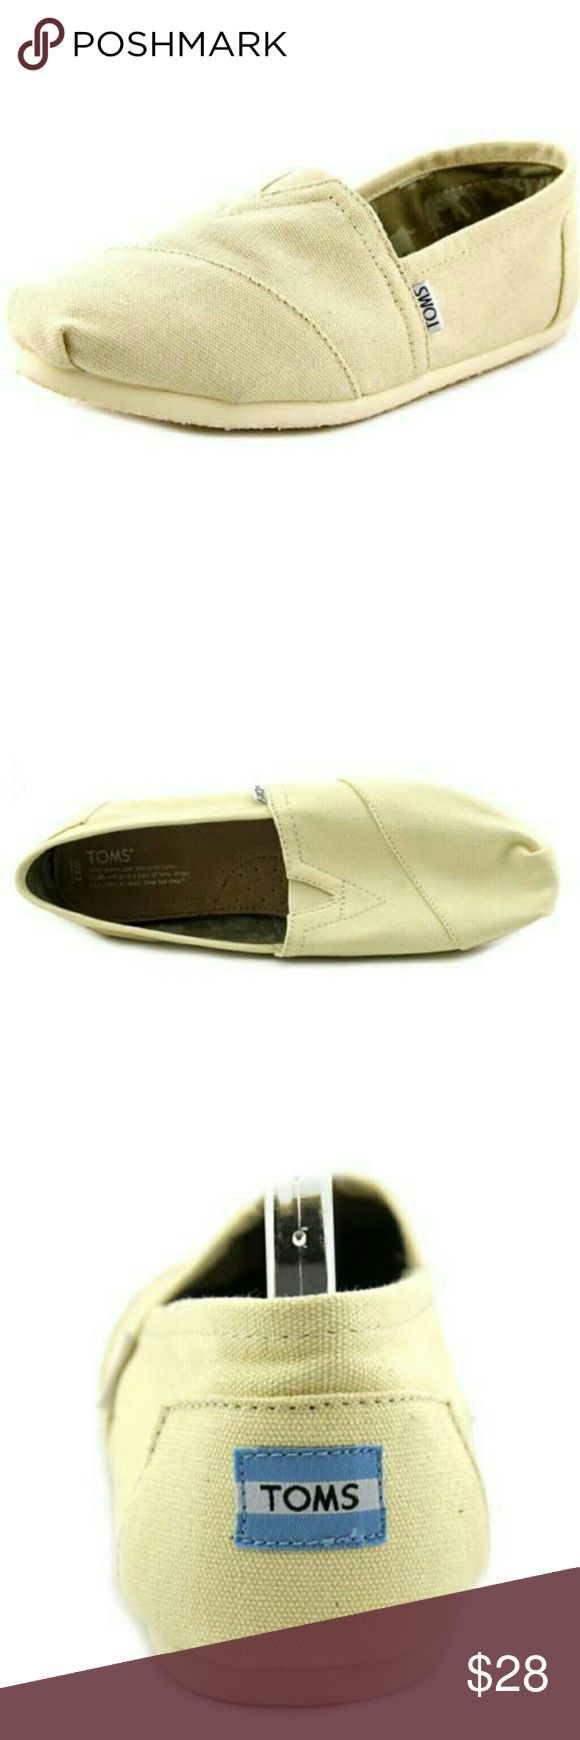 Toms Classic loafer Toms Classic men round toe canvas tan loafer. Color : Light Beige.. TOMS Shoes Loafers & Slip-Ons